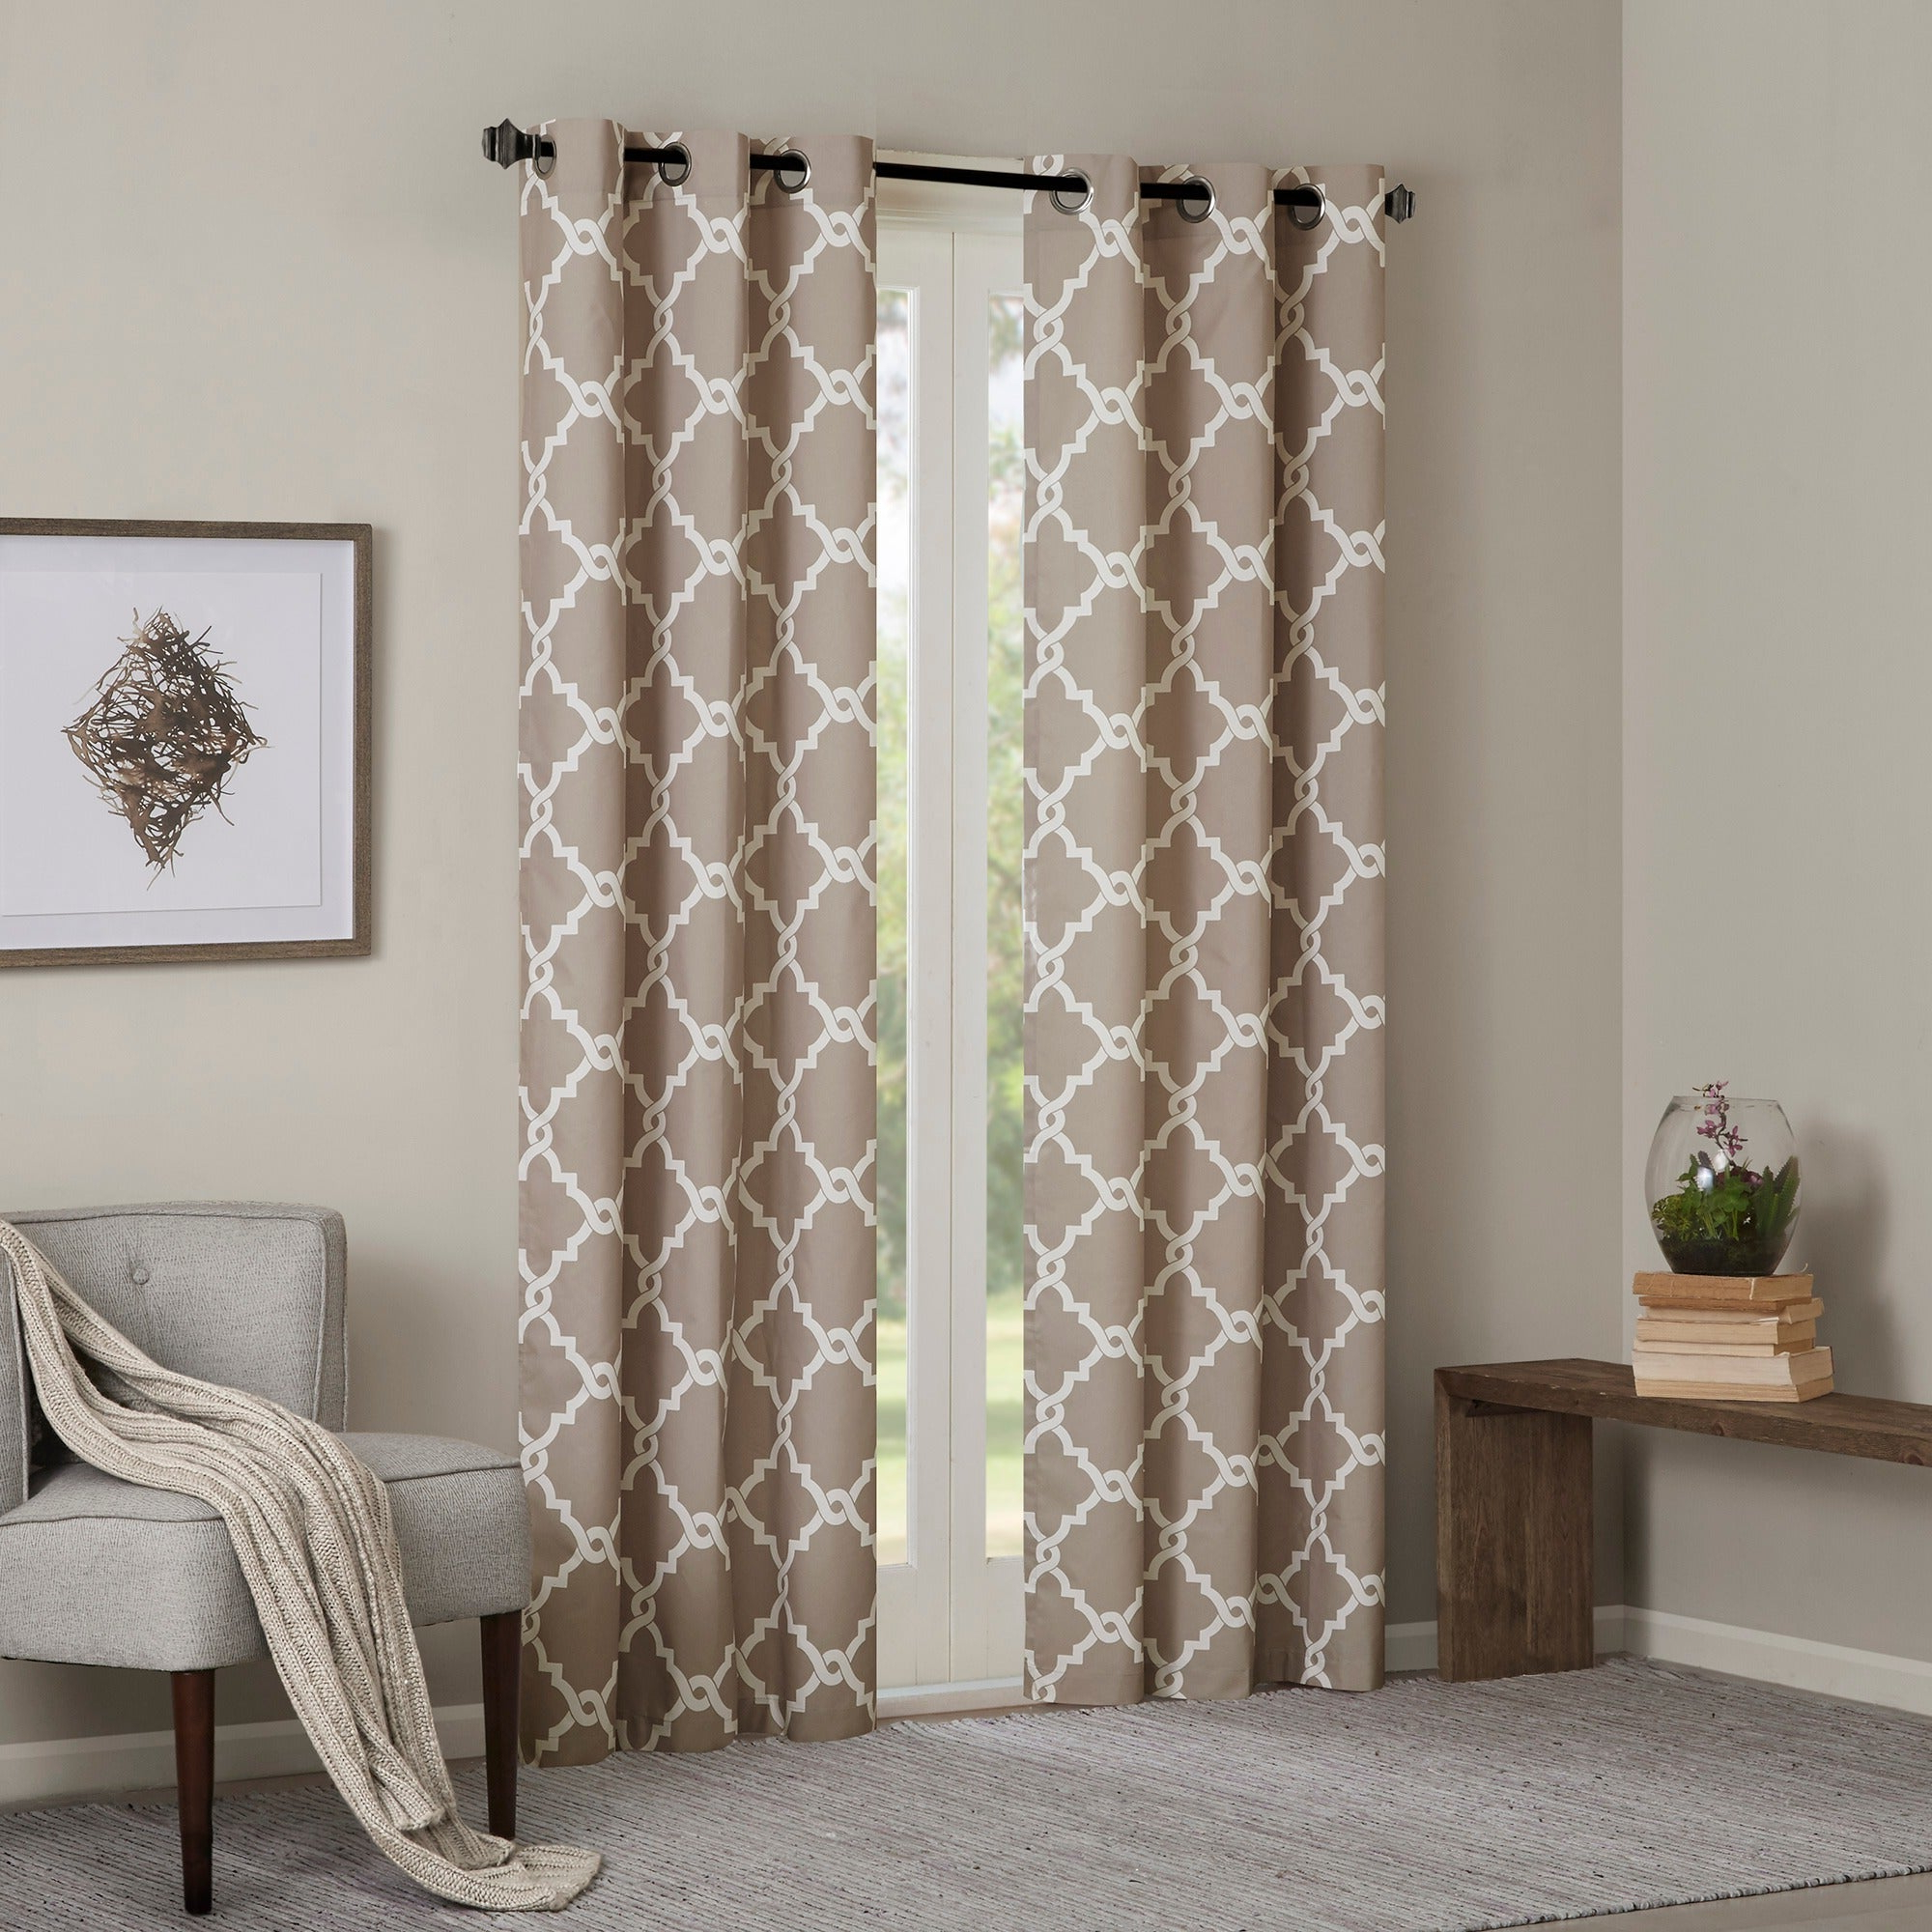 Madison Park Essentials Almaden Fretwork Printed Grommet Top Curtain Panel Pair Pertaining To 2020 Essentials Almaden Fretwork Printed Grommet Top Curtain Panel Pairs (Gallery 1 of 20)